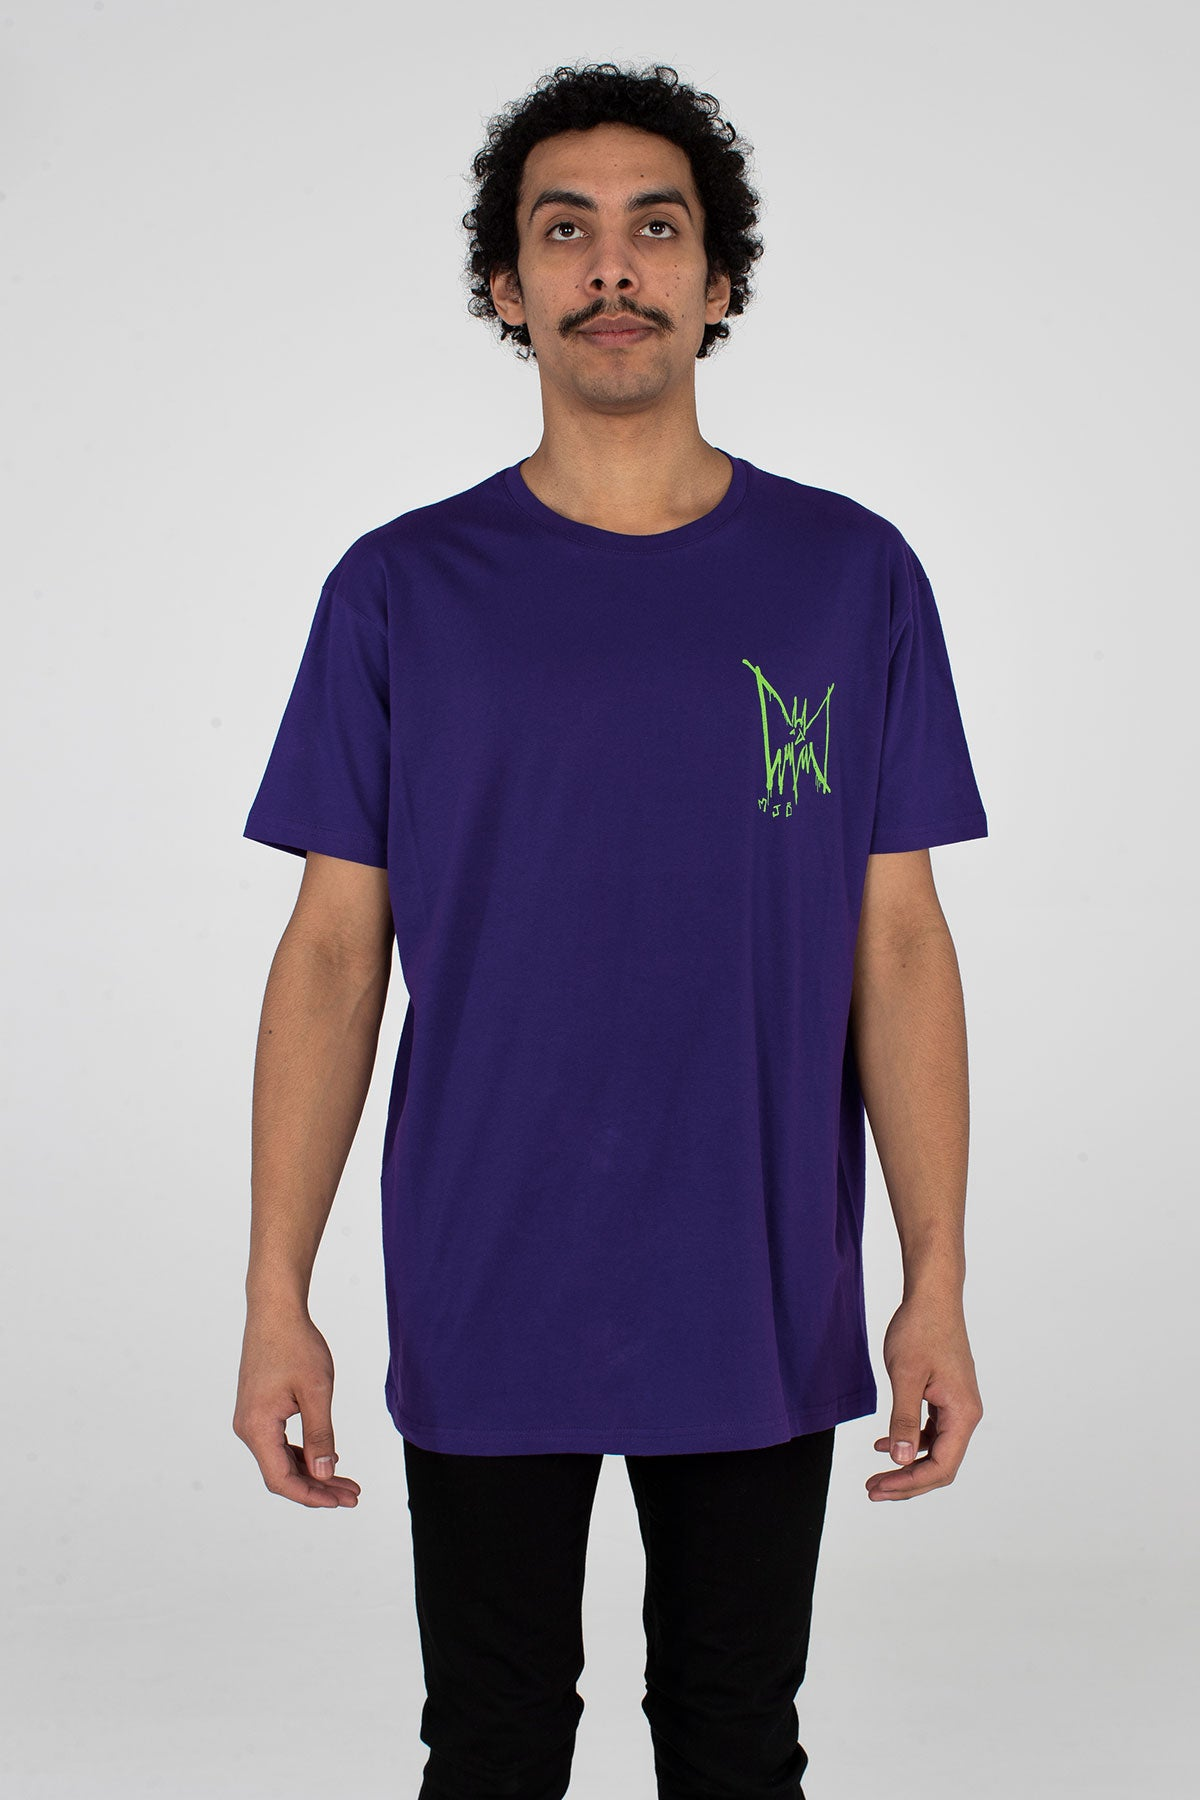 Festival T Shirt Purple Bat - MJB